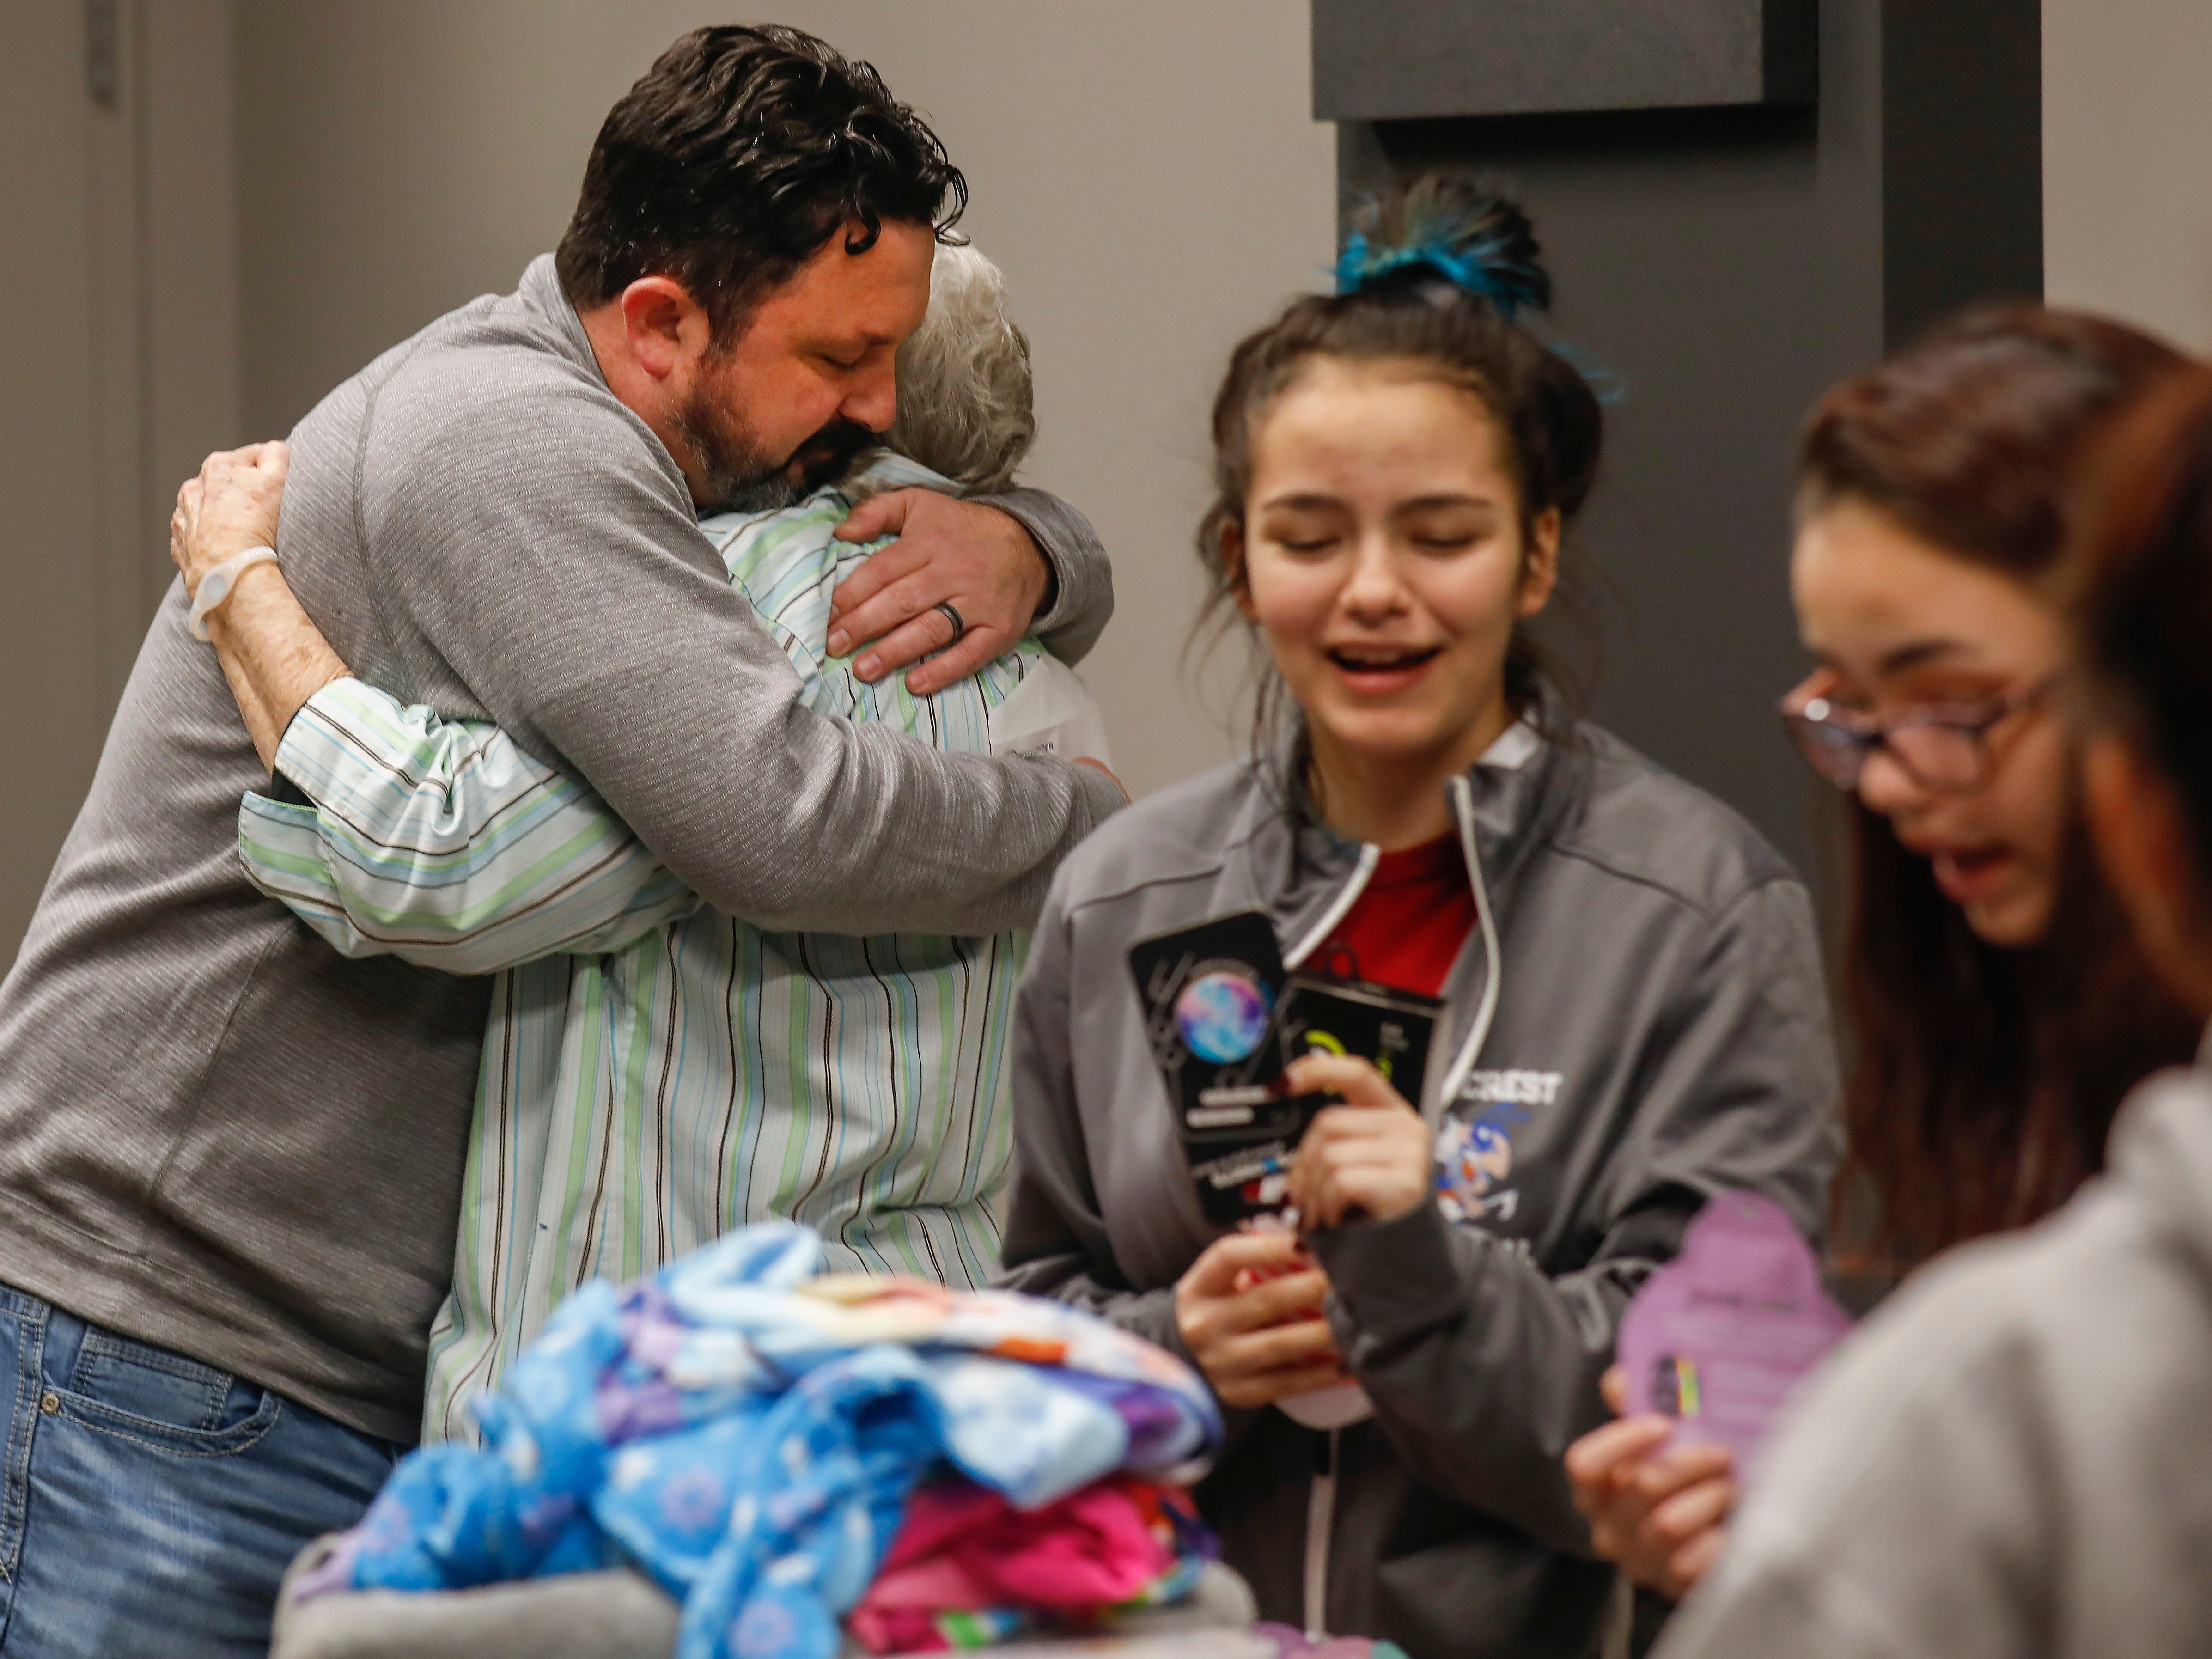 Winston Sleeth, owner of J.D. Byrider in Springfield, hugs Pat Ayers after he told her that her daughter's car loan had been forgiven on Wednesday, Dec. 19, 2018. Ayers' daughter, Barbara Foster, was killed during a road rage incident on Nov. 20. Pictured to the right, Ayers' great-granddaughters react as they look through gifts given to them by employees of J.D. Byrider.